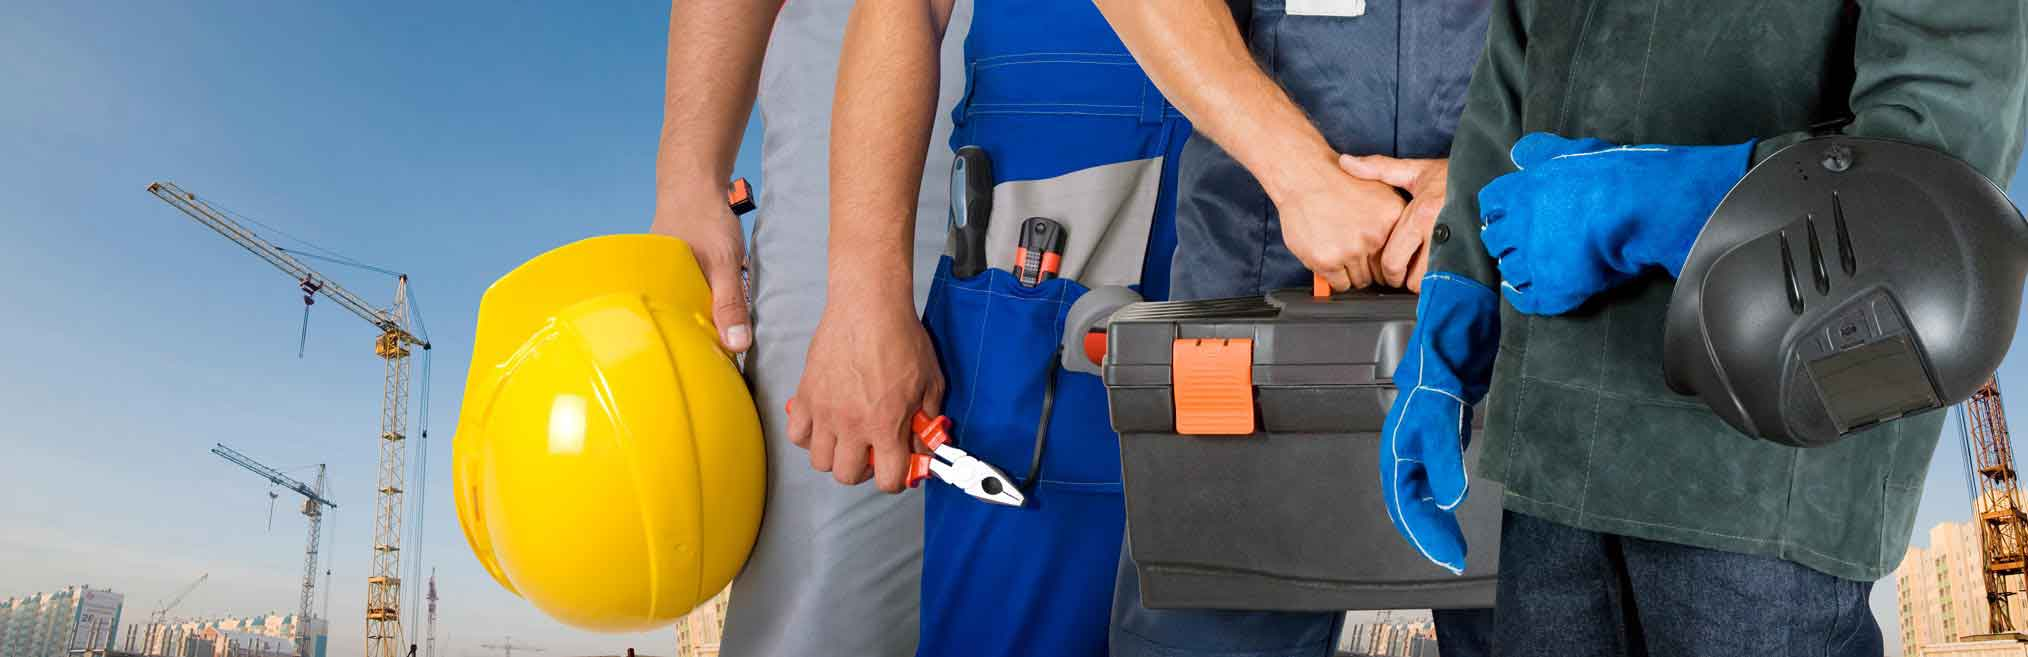 Occupational and Employer Health Solutions